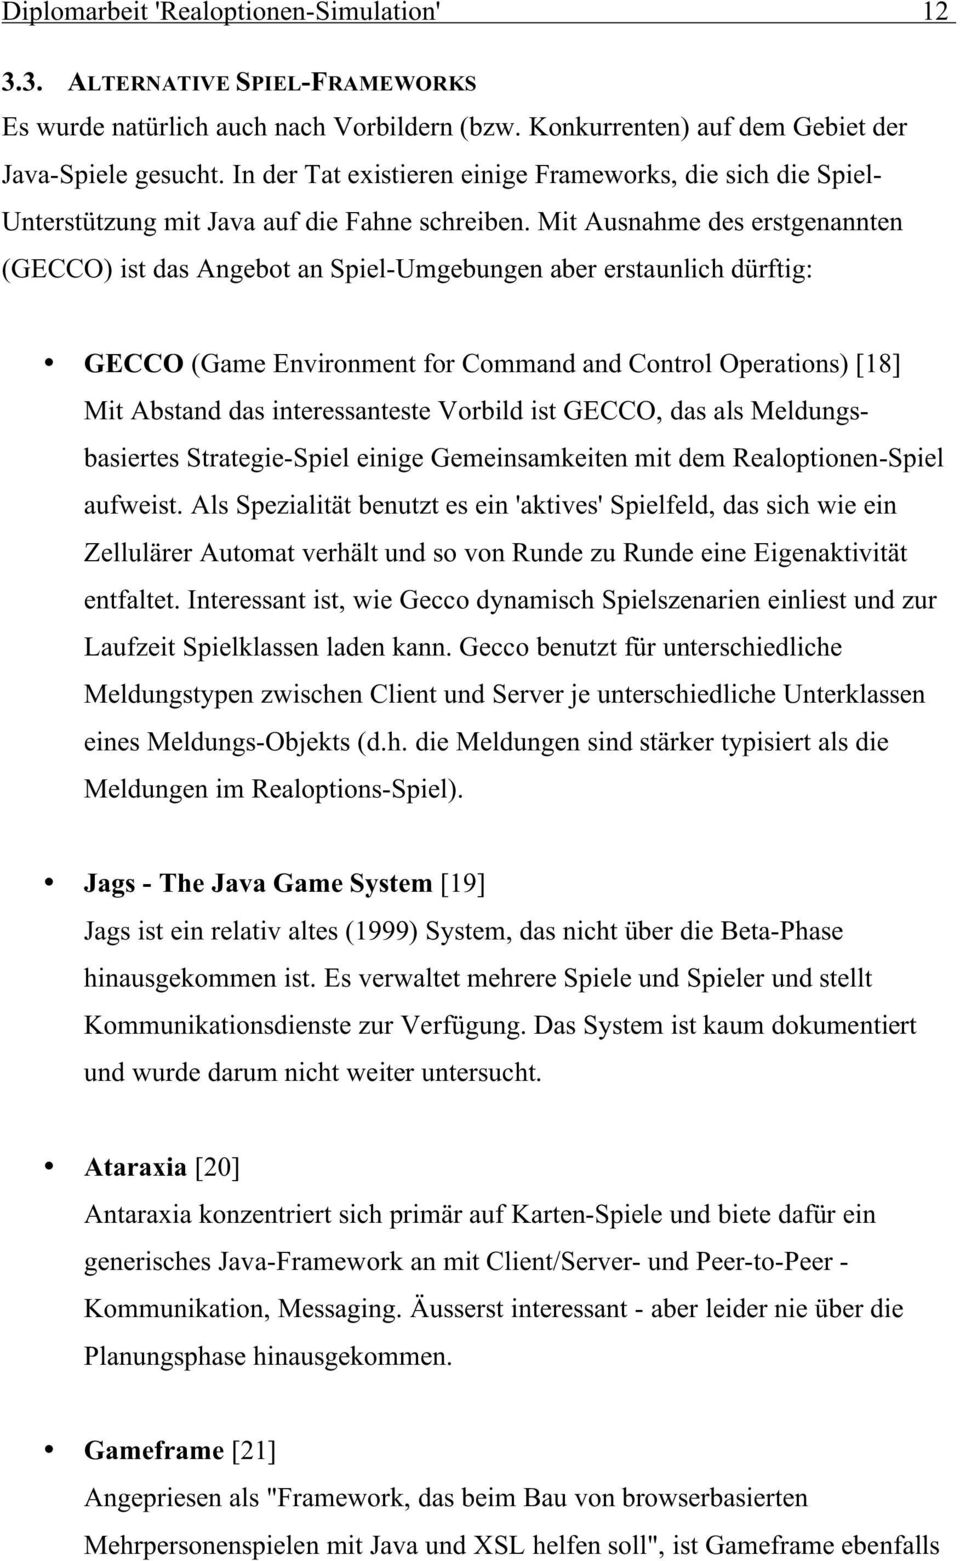 Mit Ausnahme des erstgenannten (GECCO) ist das Angebot an Spiel-Umgebungen aber erstaunlich dürftig: GECCO (Game Environment for Command and Control Operations) [8] Mit Abstand das interessanteste